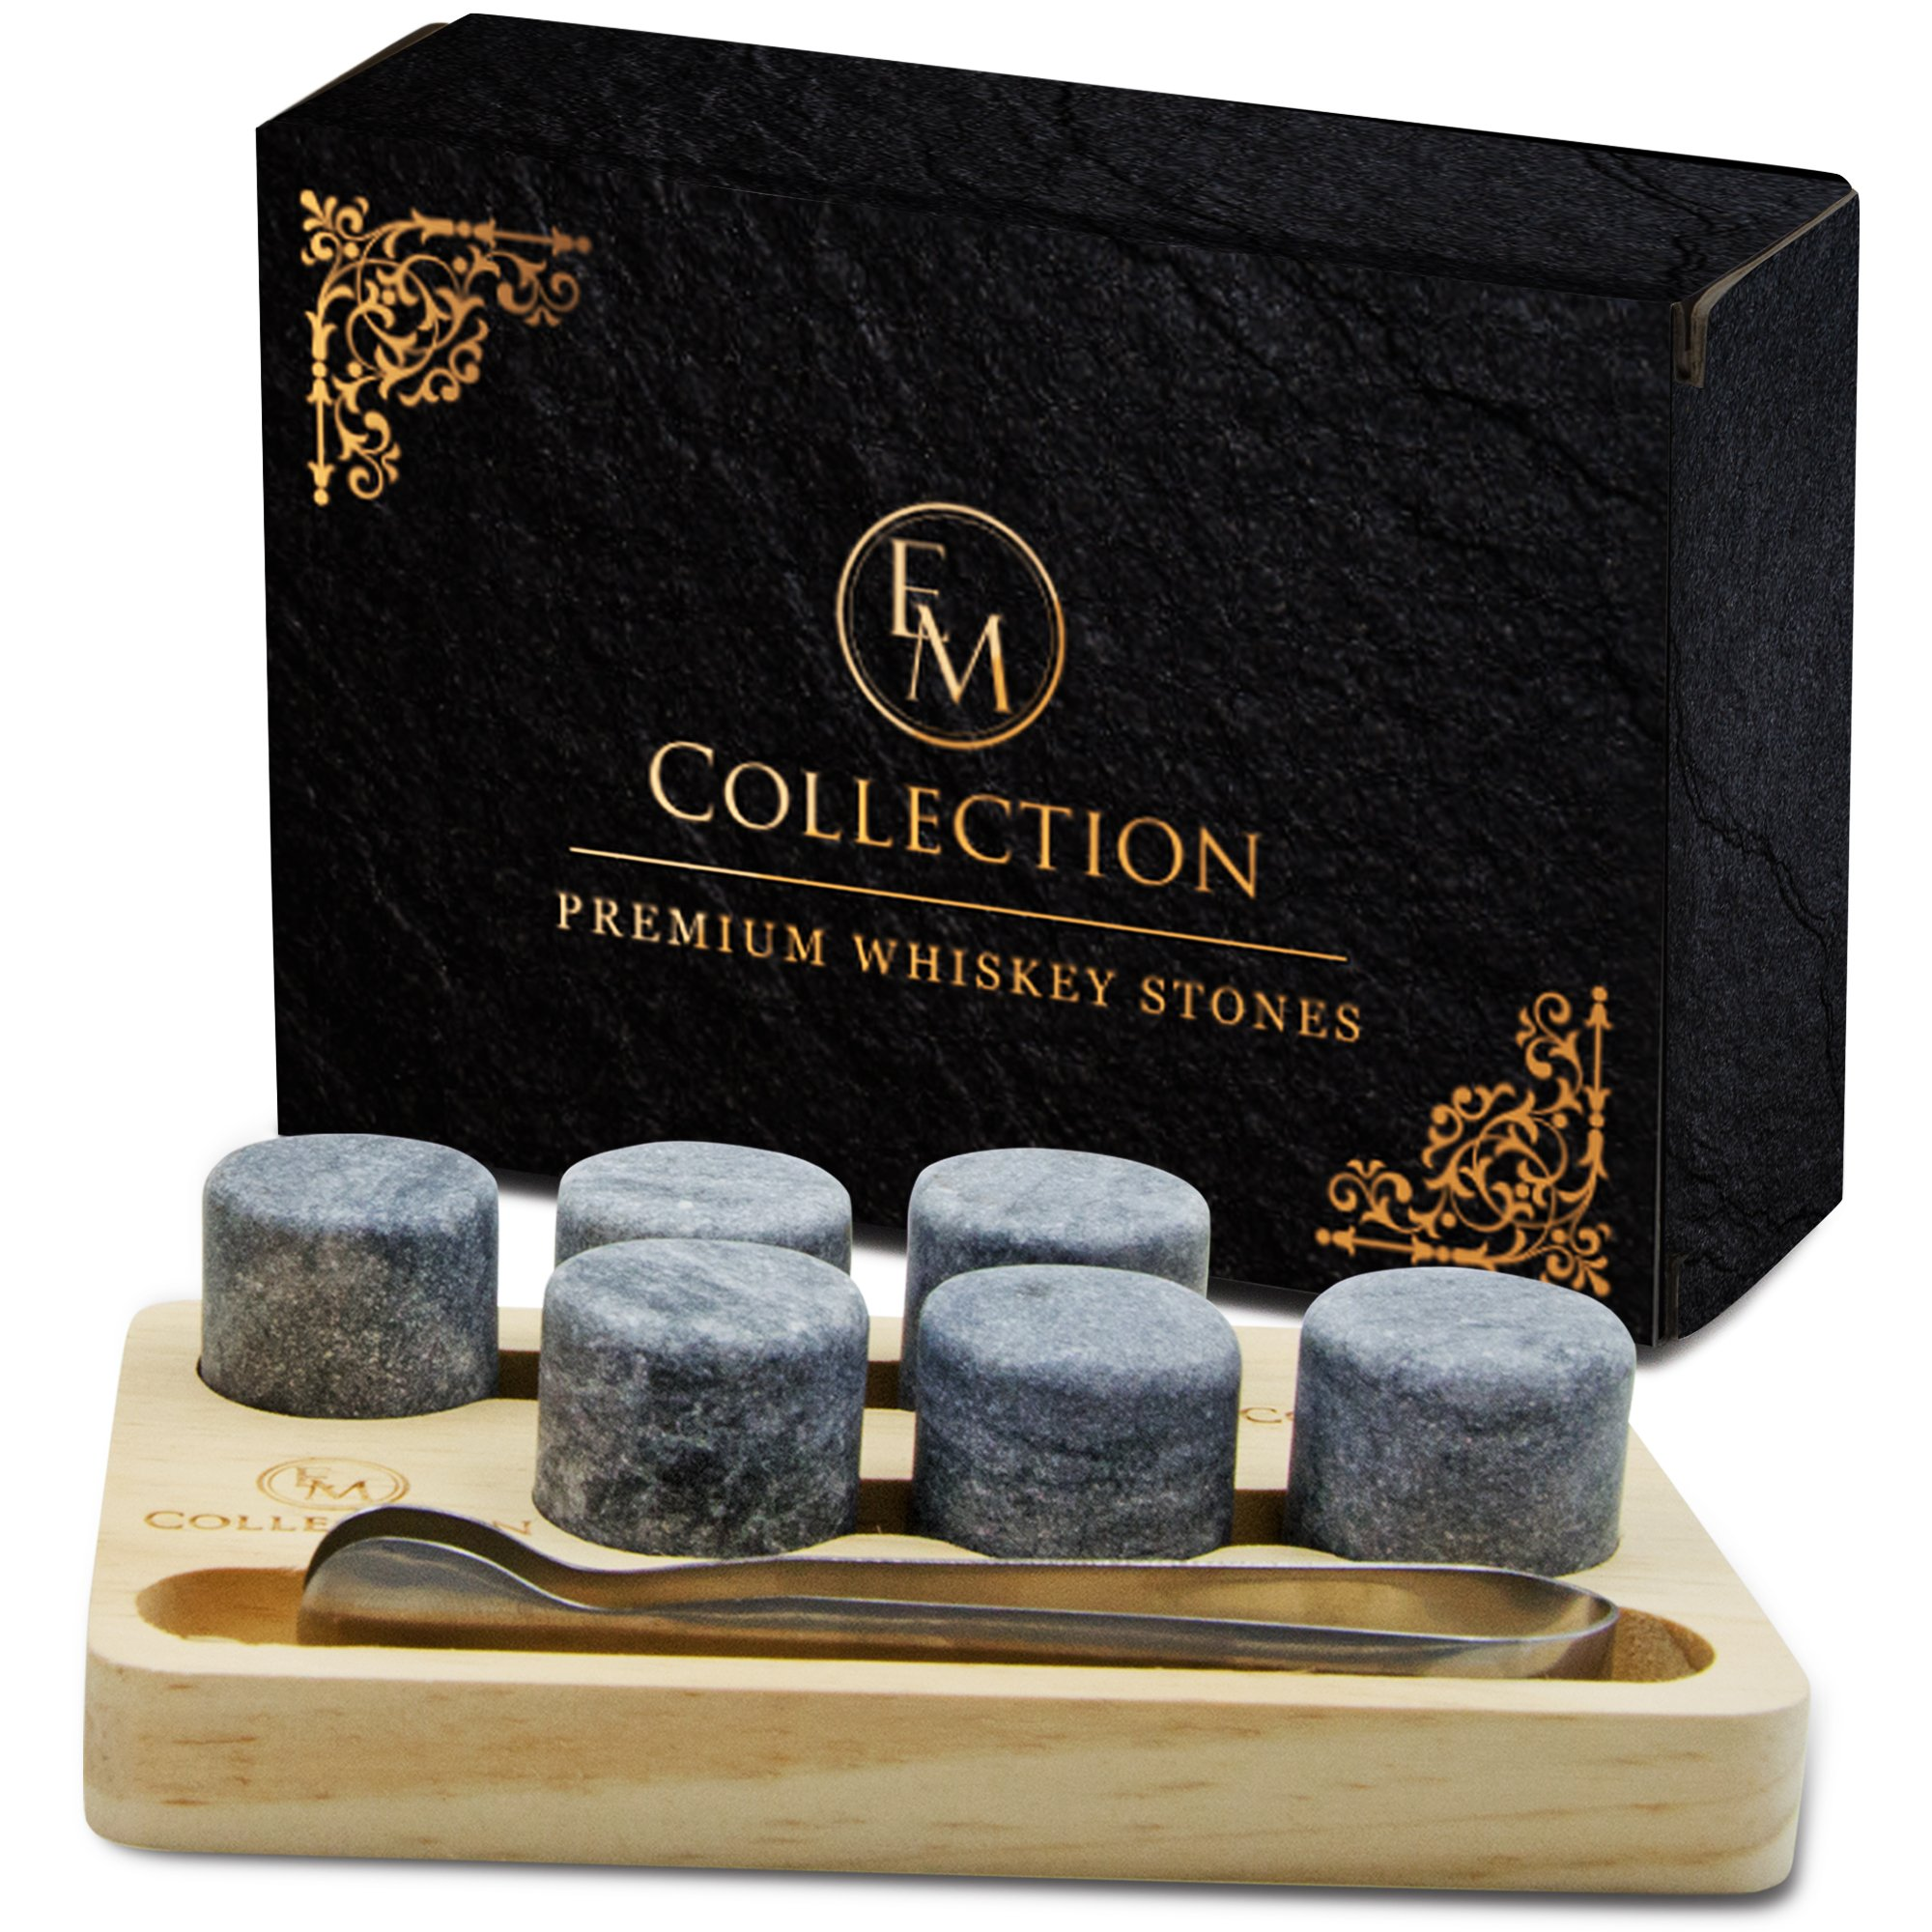 Whiskey Chilling Stones Gift Set of 6 w/Wooden Storage Tray & Forceps: Chill Any Beverage Without Dilution. Round Granite Rocks Cool a Cocktail or Scotch Better Than Ice Cubes or Soapstone